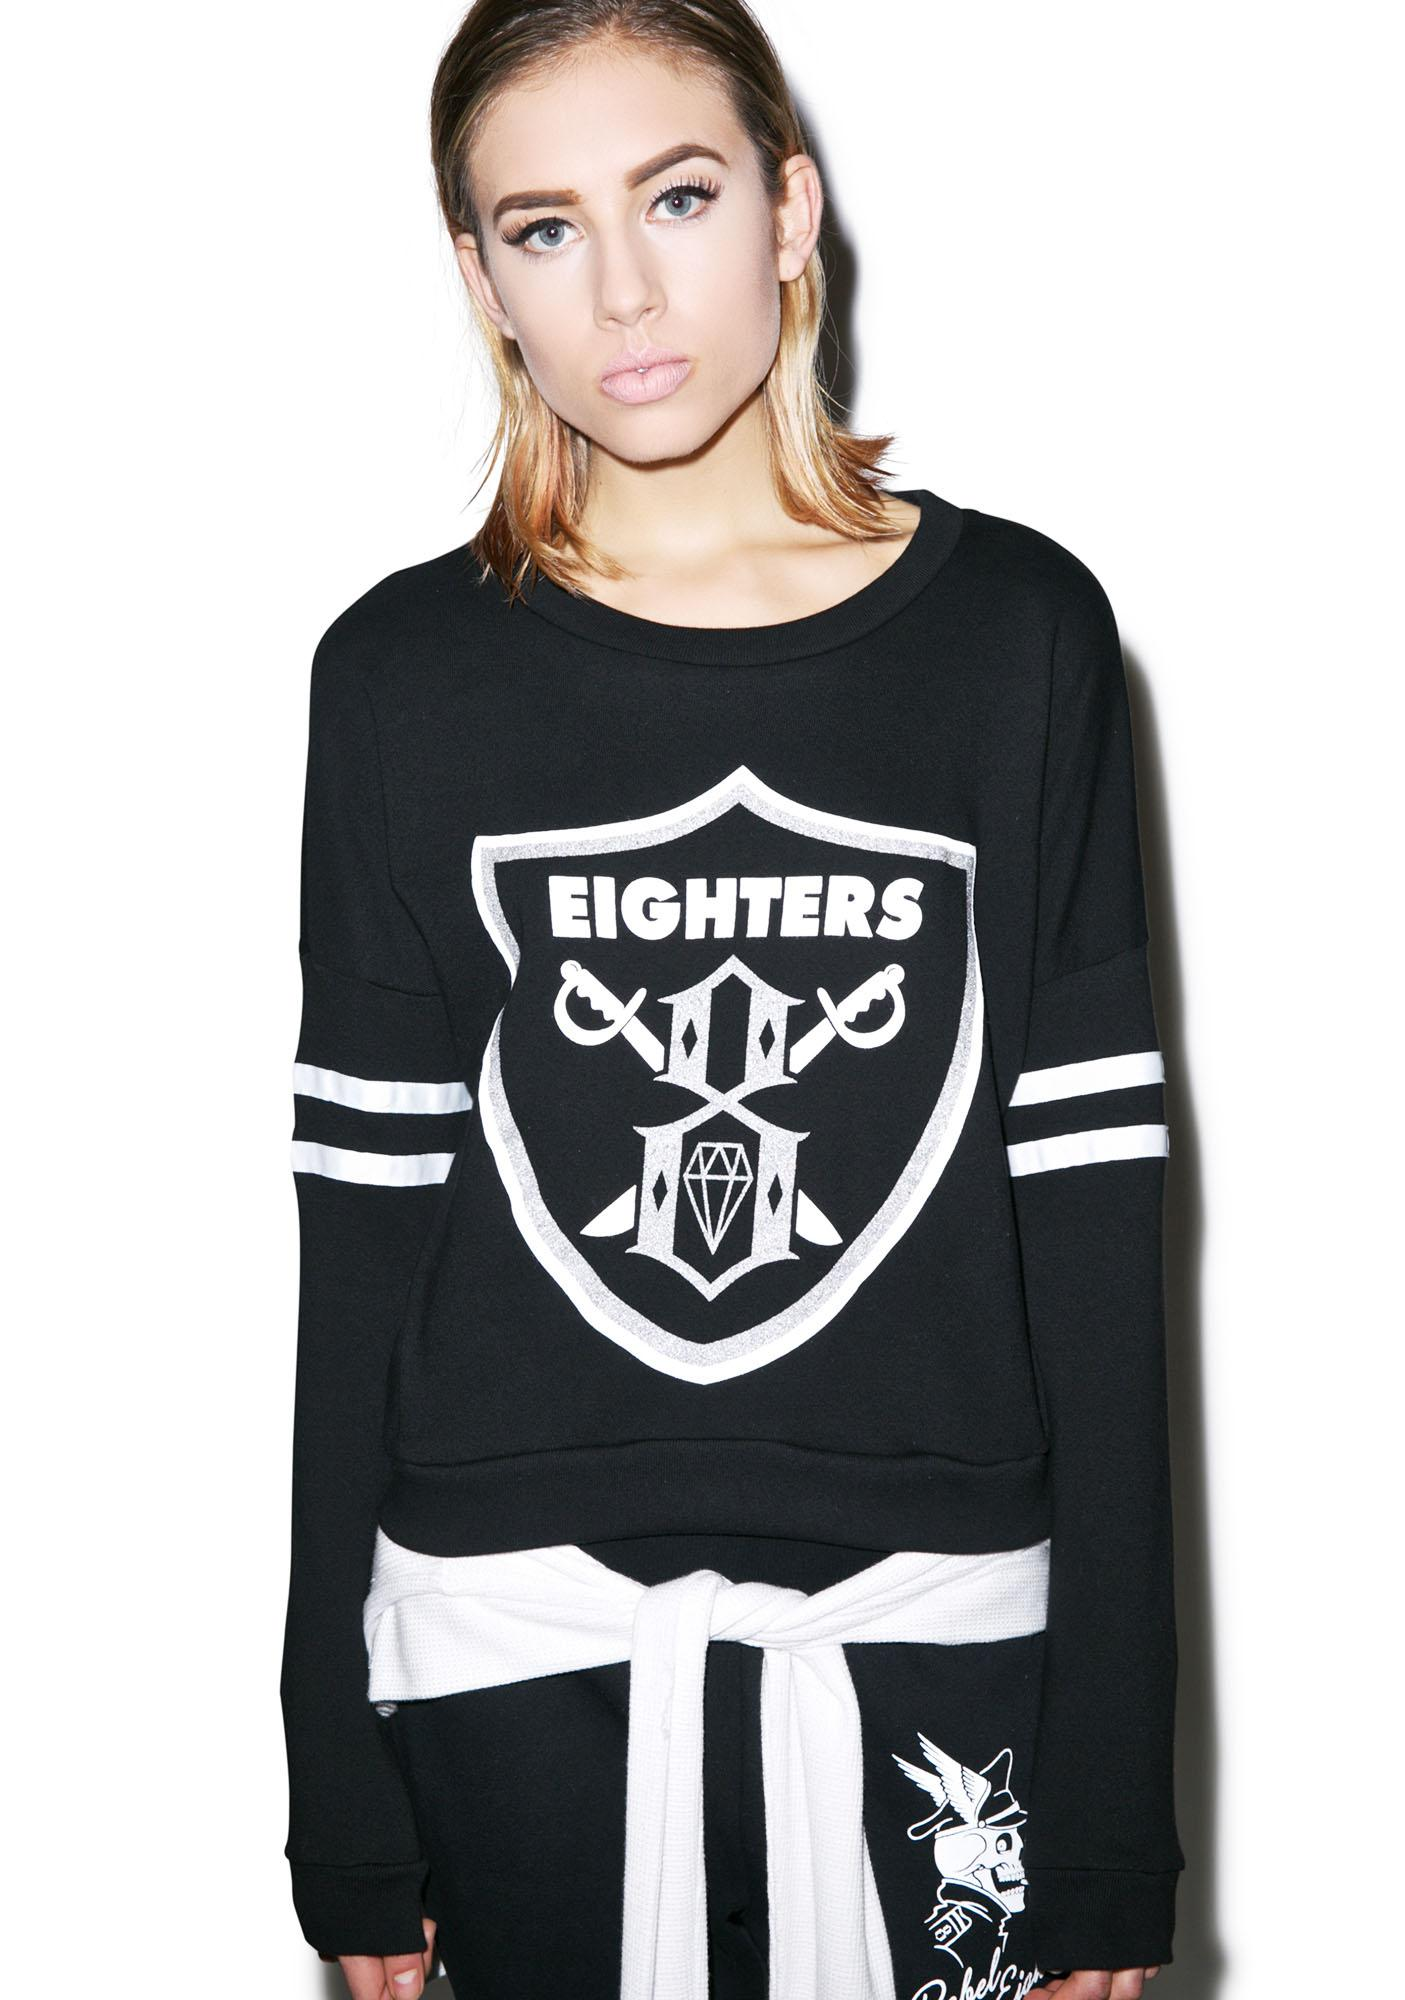 Rebel8 Eighters Cropped Crew